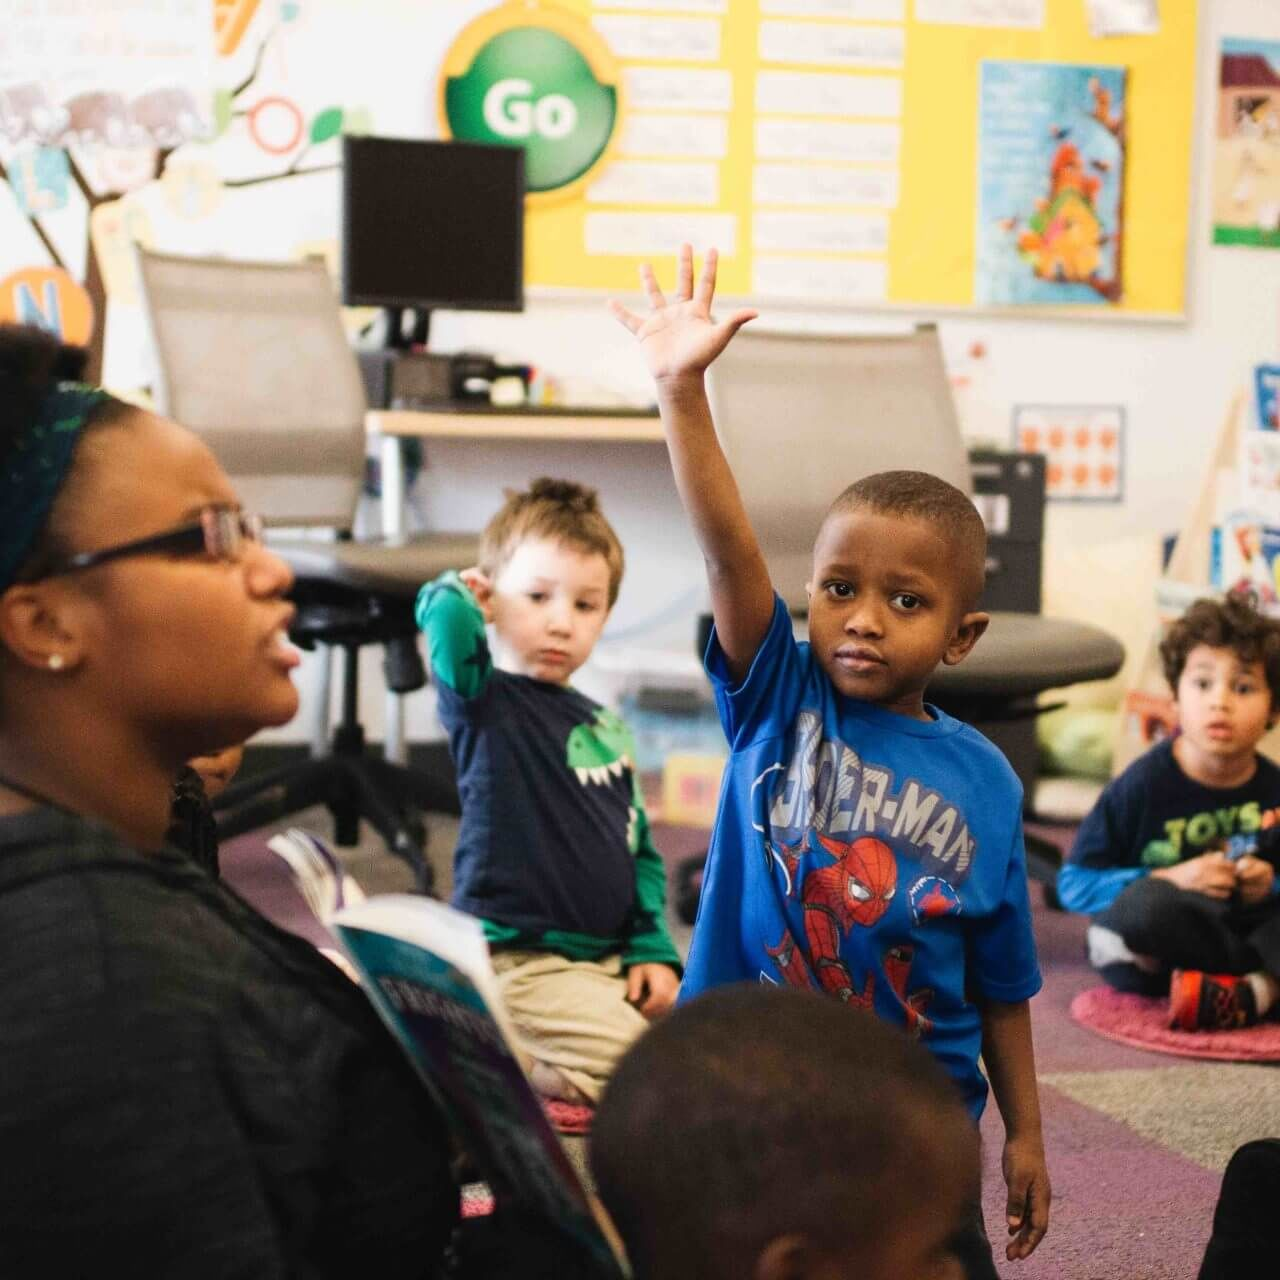 boy raising his hand to answer a question in preschool class